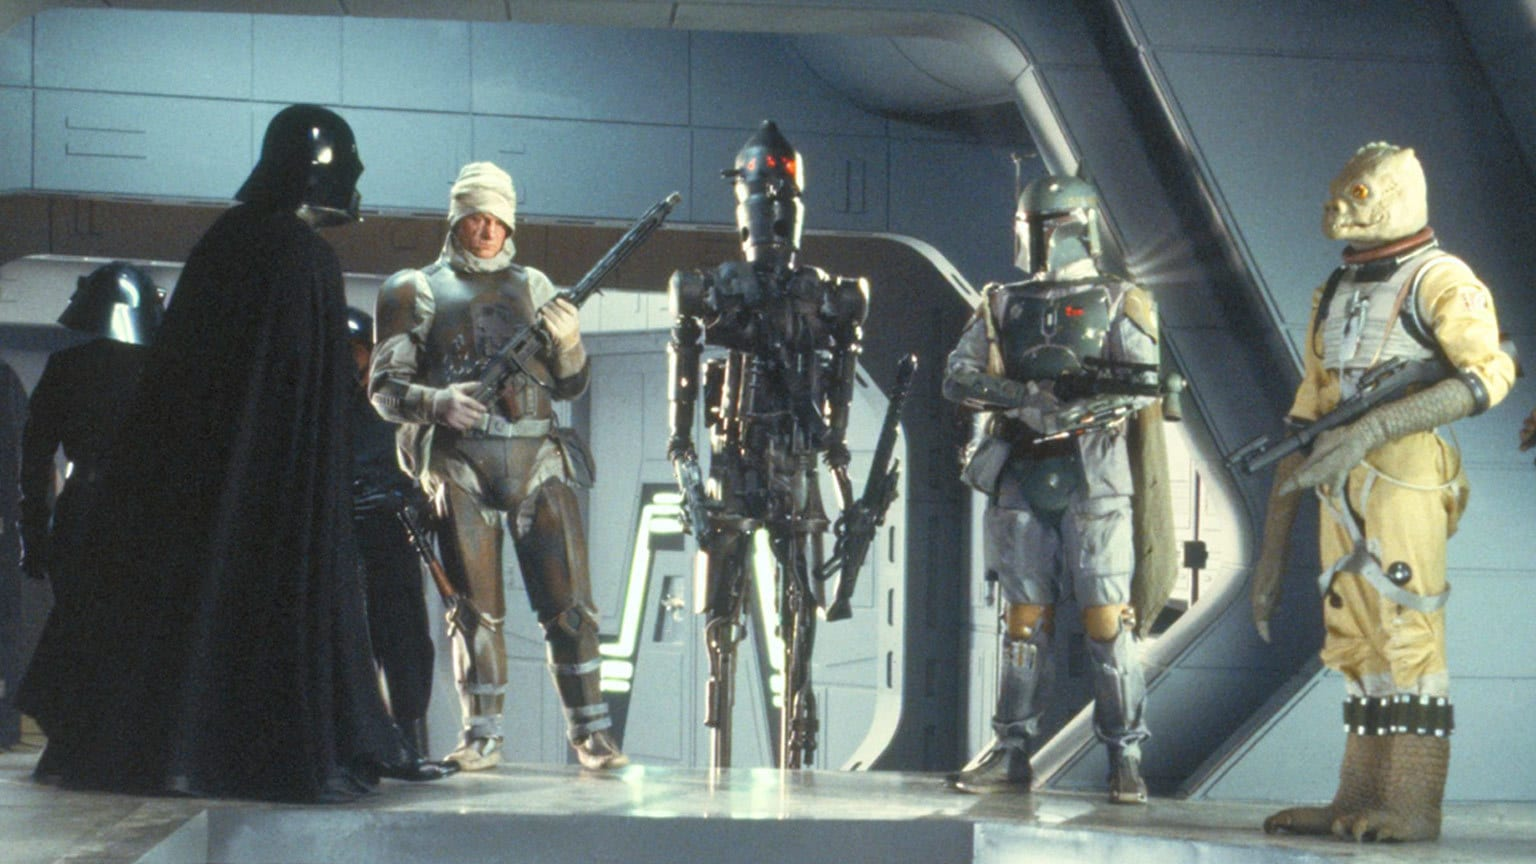 From a Certain Point of View: Who's the Most Underrated Bounty Hunter in Star Wars?